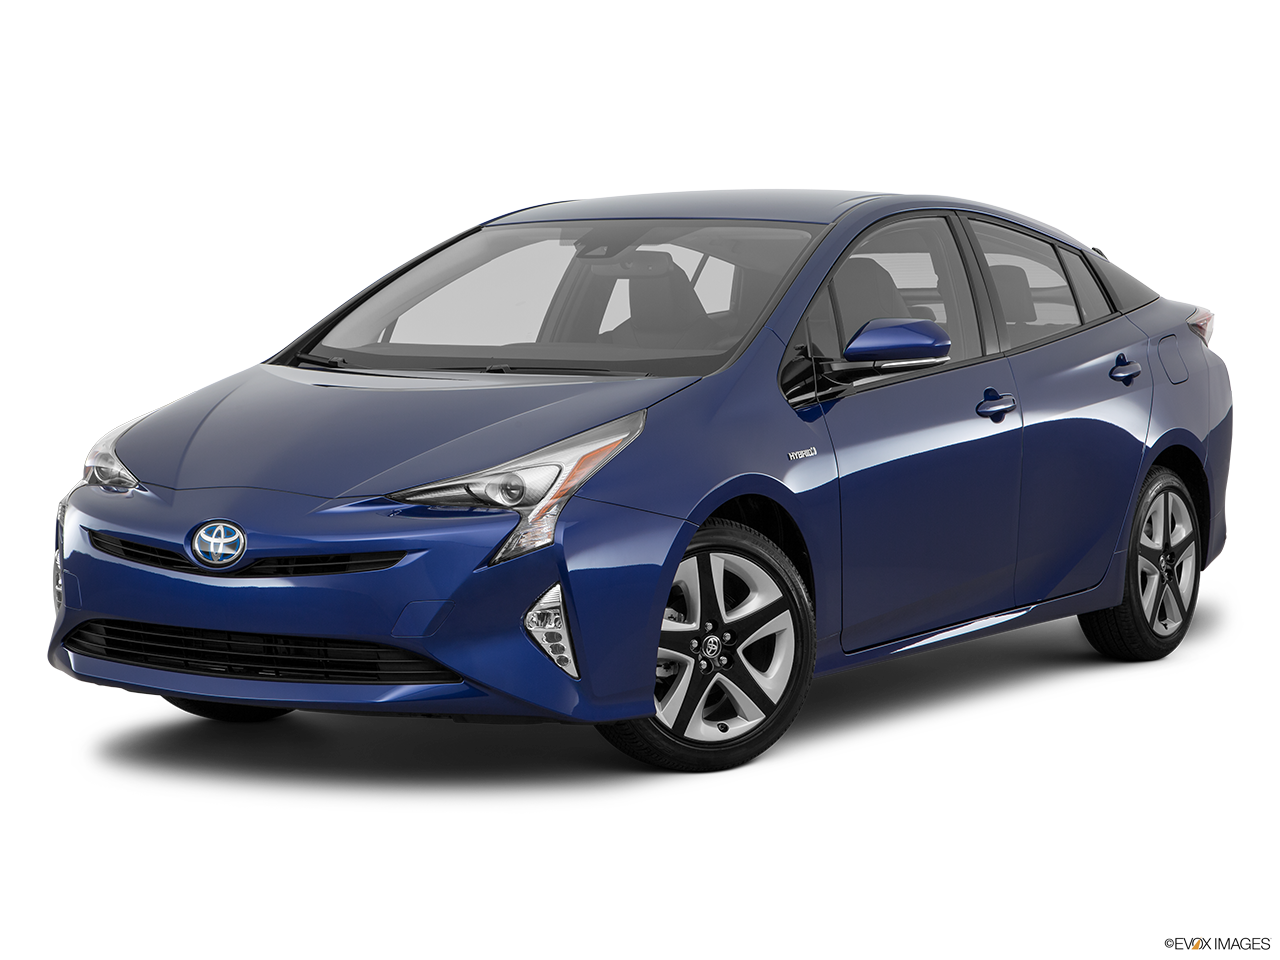 Test Drive A 2016 Toyota Prius at Tustin Toyota in Tustin